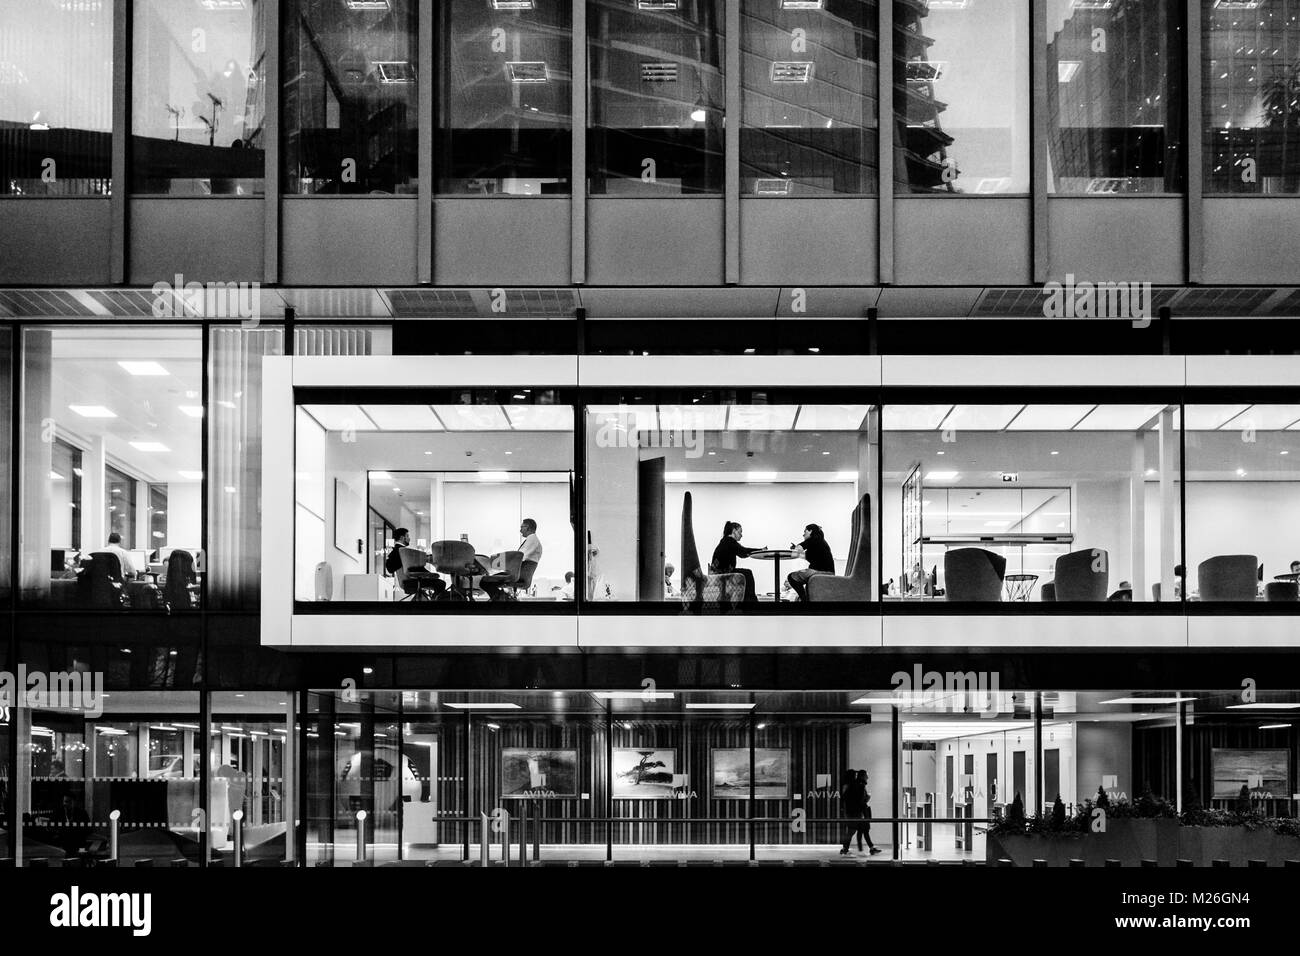 London black and white urban photography: office building in City of London. - Stock Image